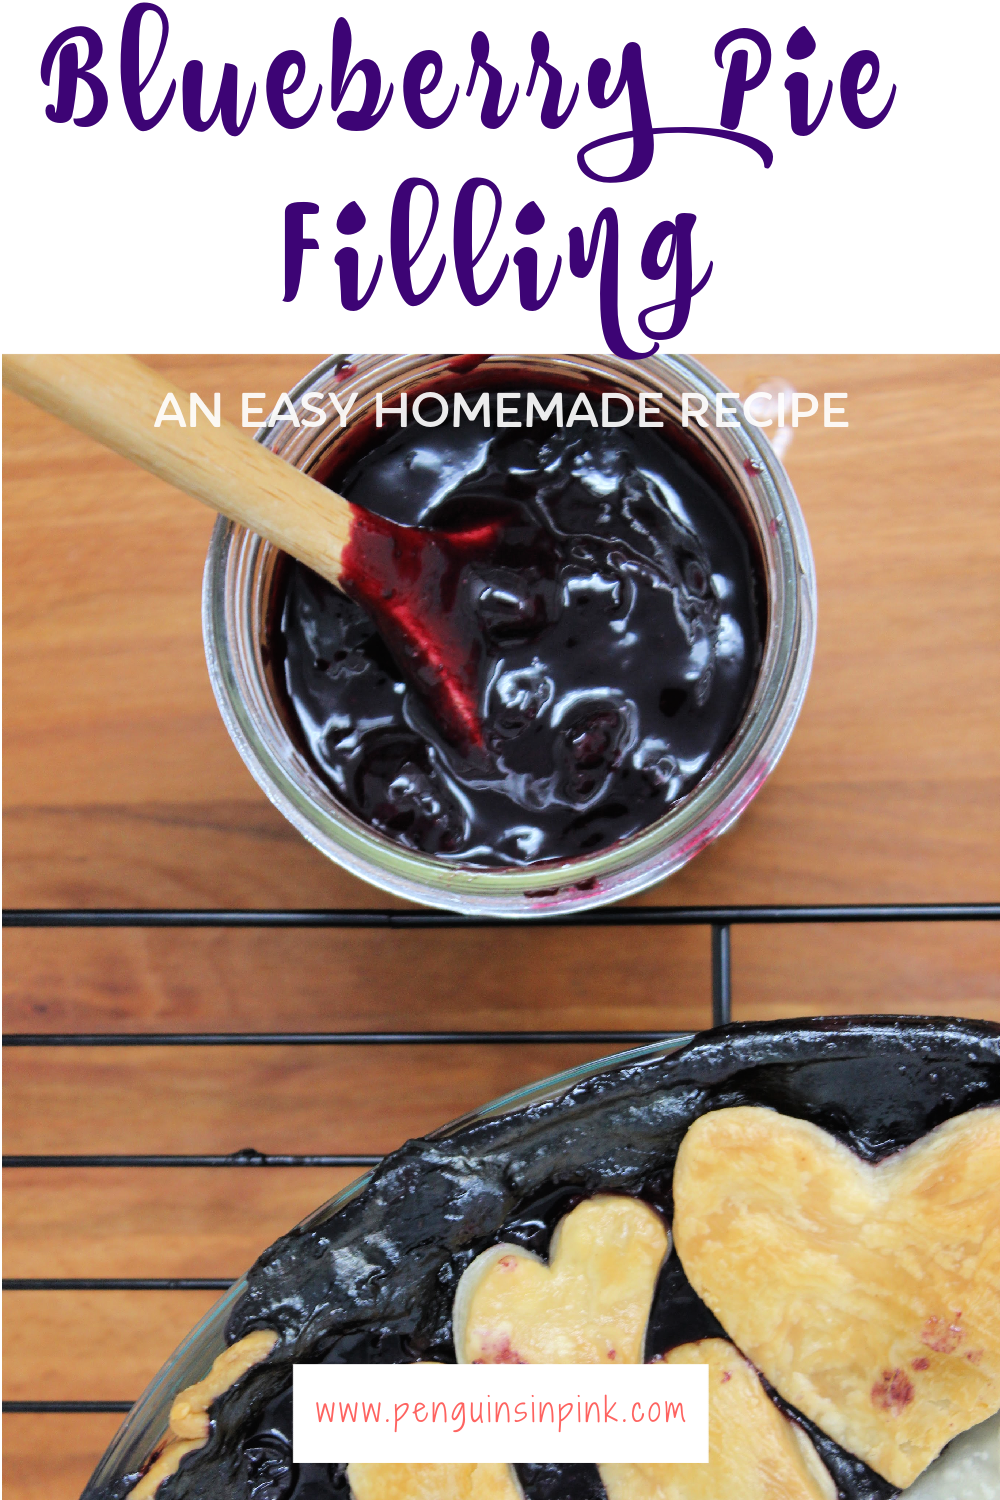 A sweet, easy to make homemade blueberry pie filling that is Trim Healthy Mama friendly with options for paleo and is perfect on top of Greek yogurt, ice cream, mixed in our oatmeal, or you know... baked in a pie!